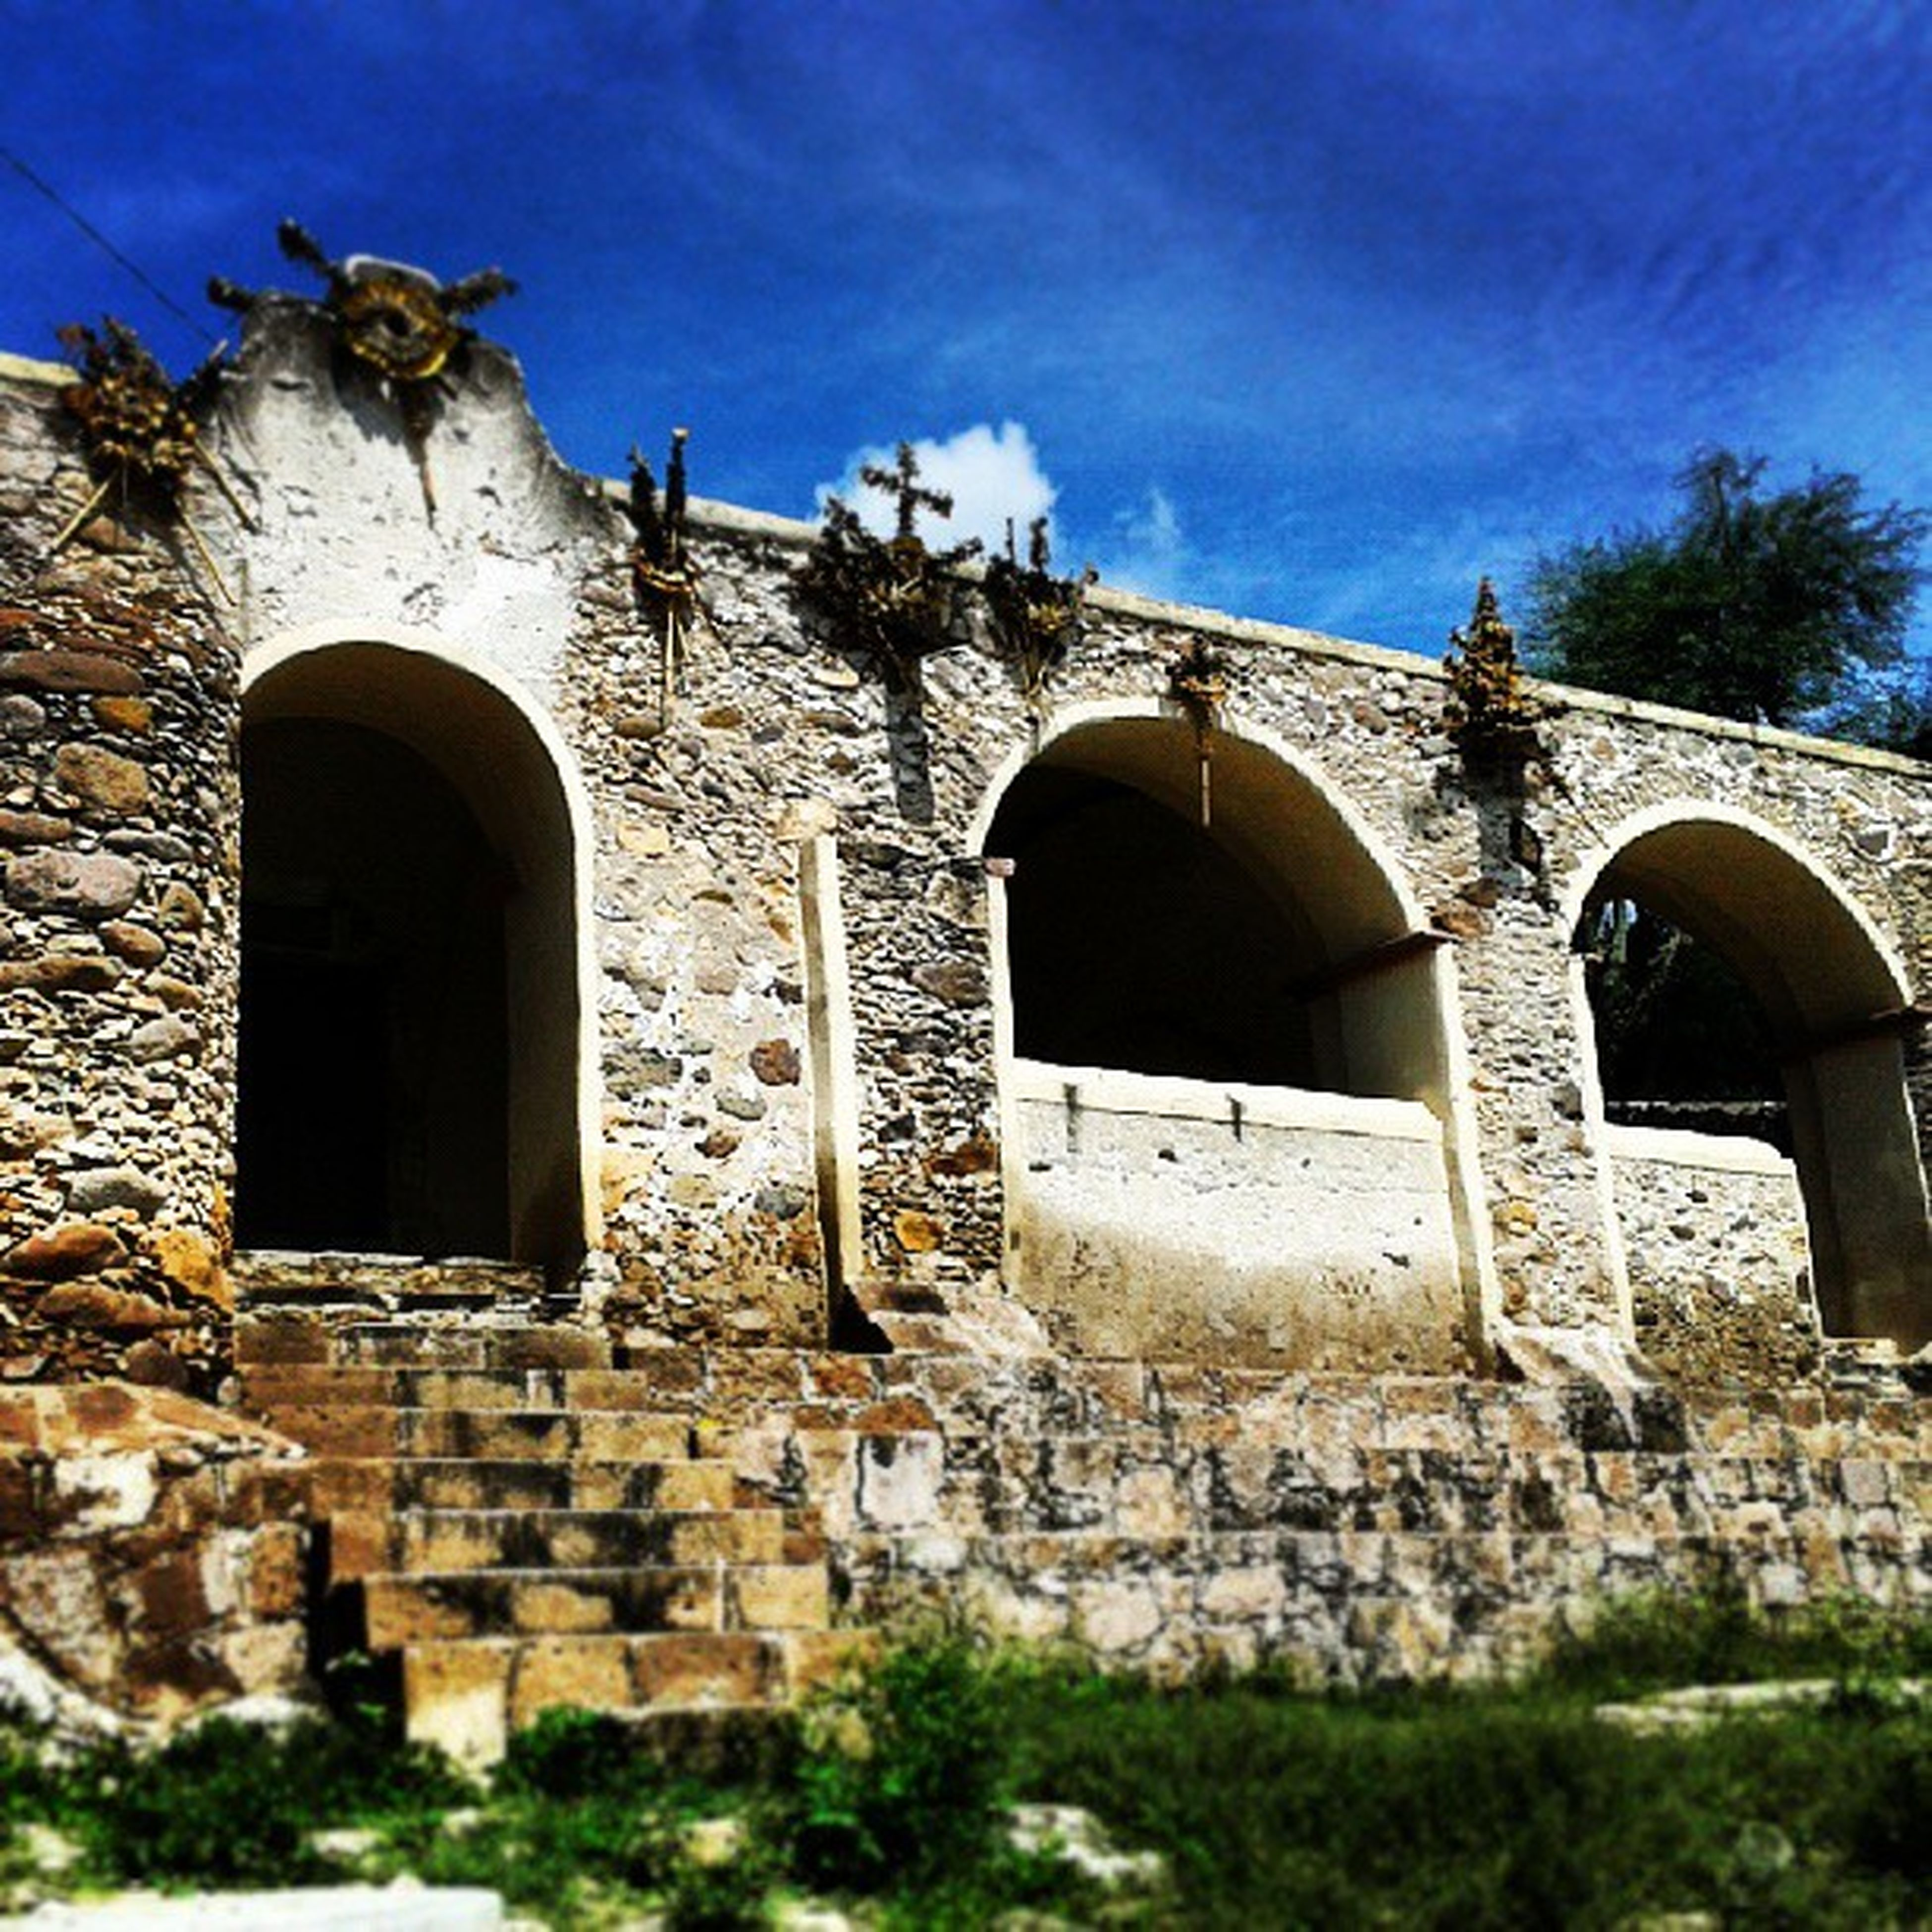 architecture, built structure, building exterior, old, abandoned, old ruin, damaged, obsolete, history, run-down, deterioration, arch, weathered, low angle view, stone wall, sky, ruined, the past, bad condition, window